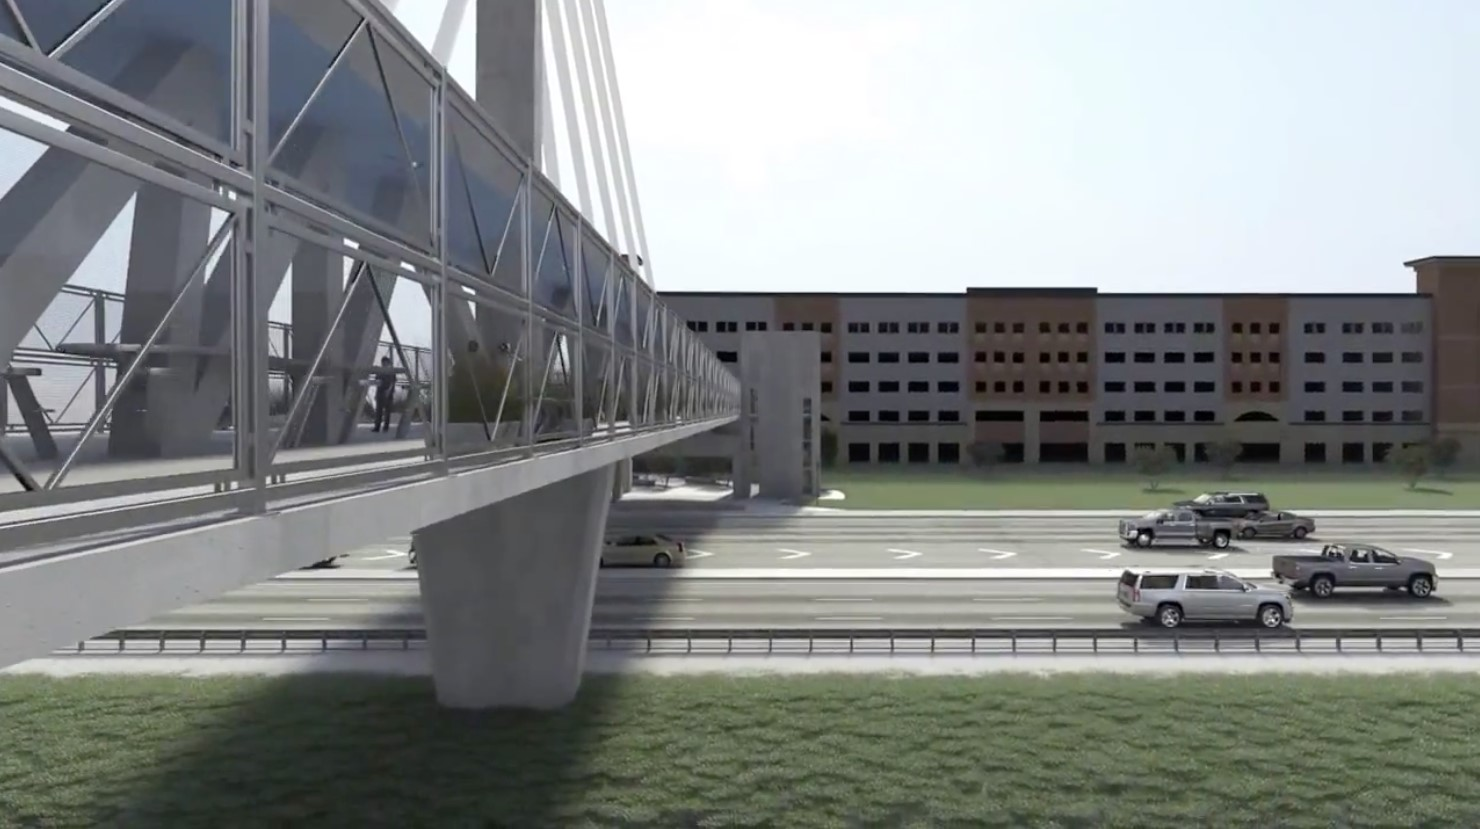 Pedestrian bridge rendering 2.5.16 1